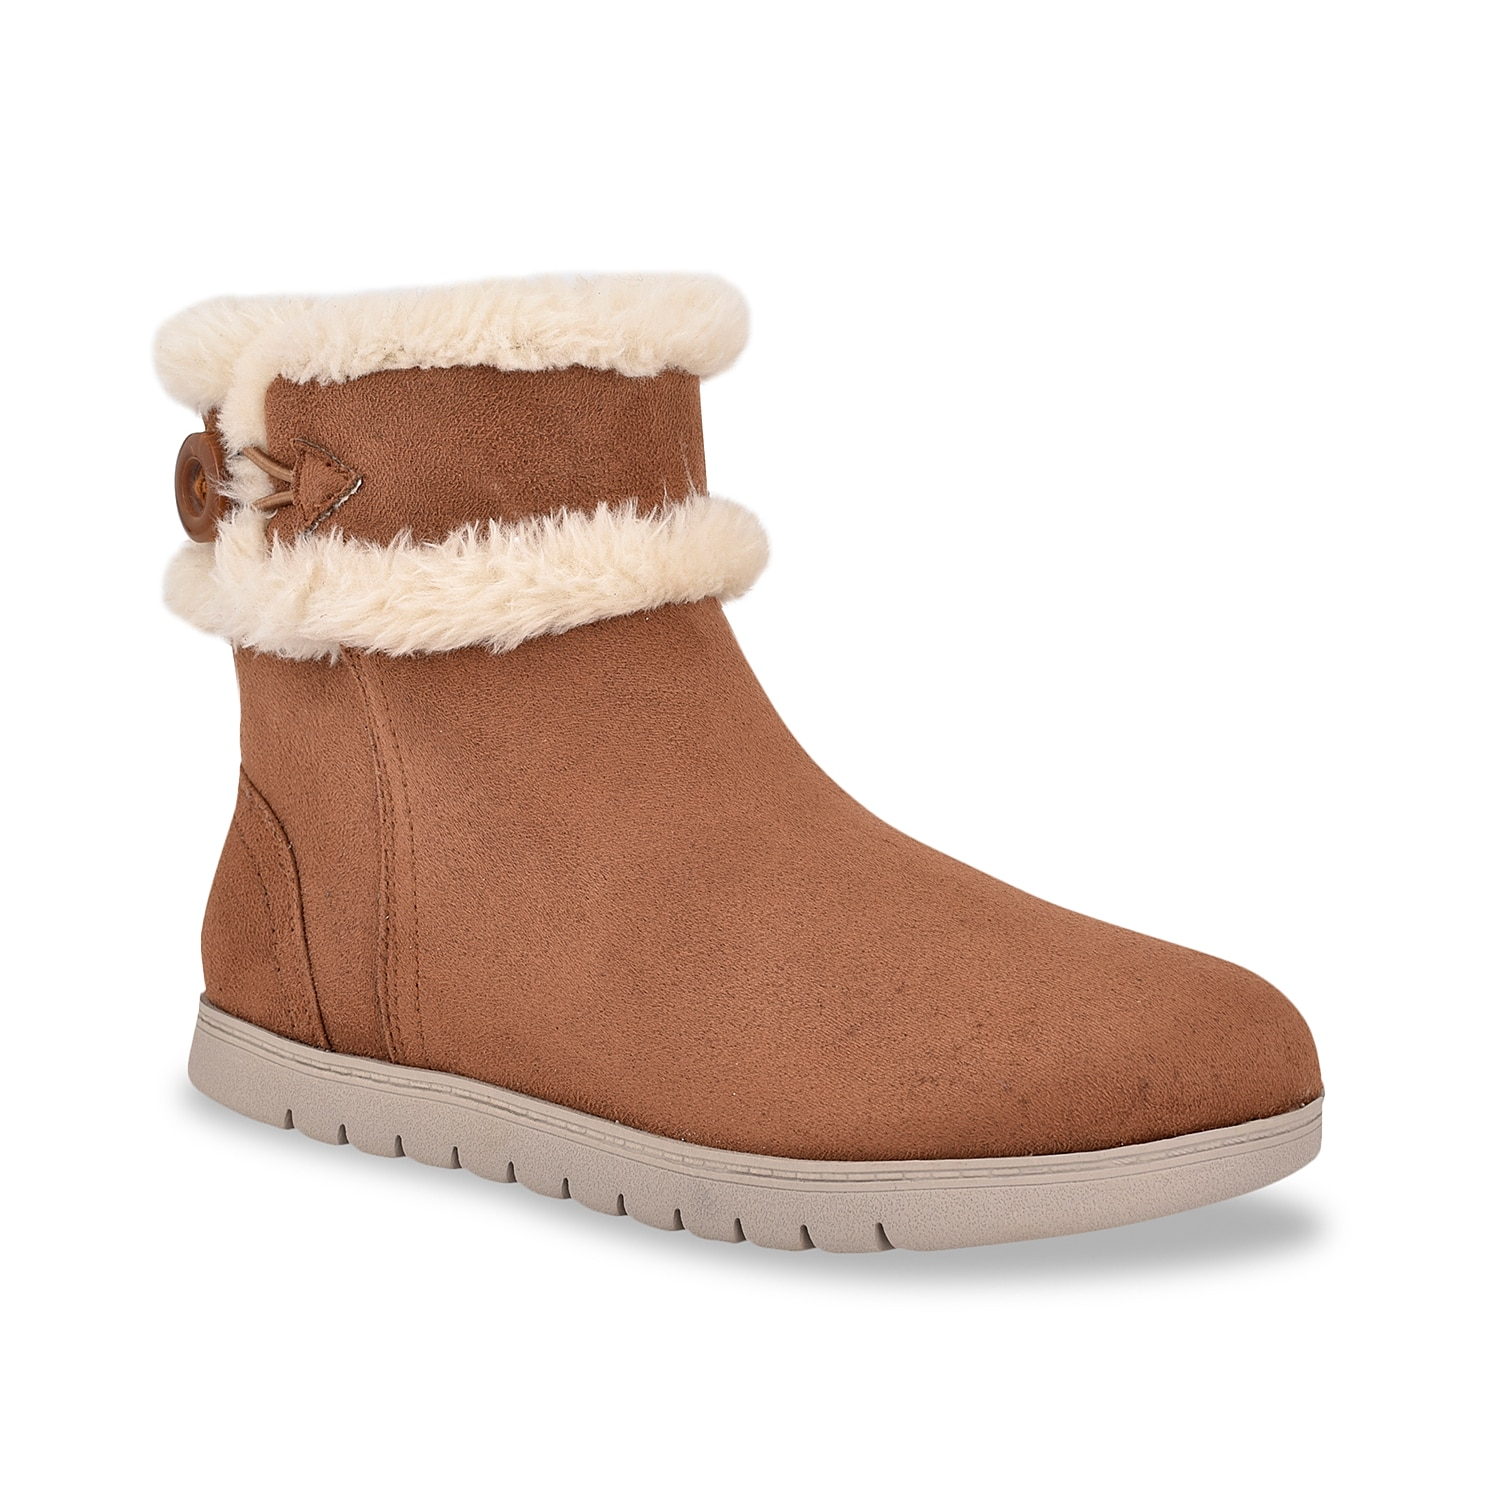 You can rely absolutely on the Snowy bootie by Easy Spirit for your indoor and outdoor strolls. Comprising a pull-on profile with button for easy wear, this slipper bootie has plush faux fur trim, comfortable fabric footbed and lightweight, molded rubber sole.Click here for Boot Measuring Guide.